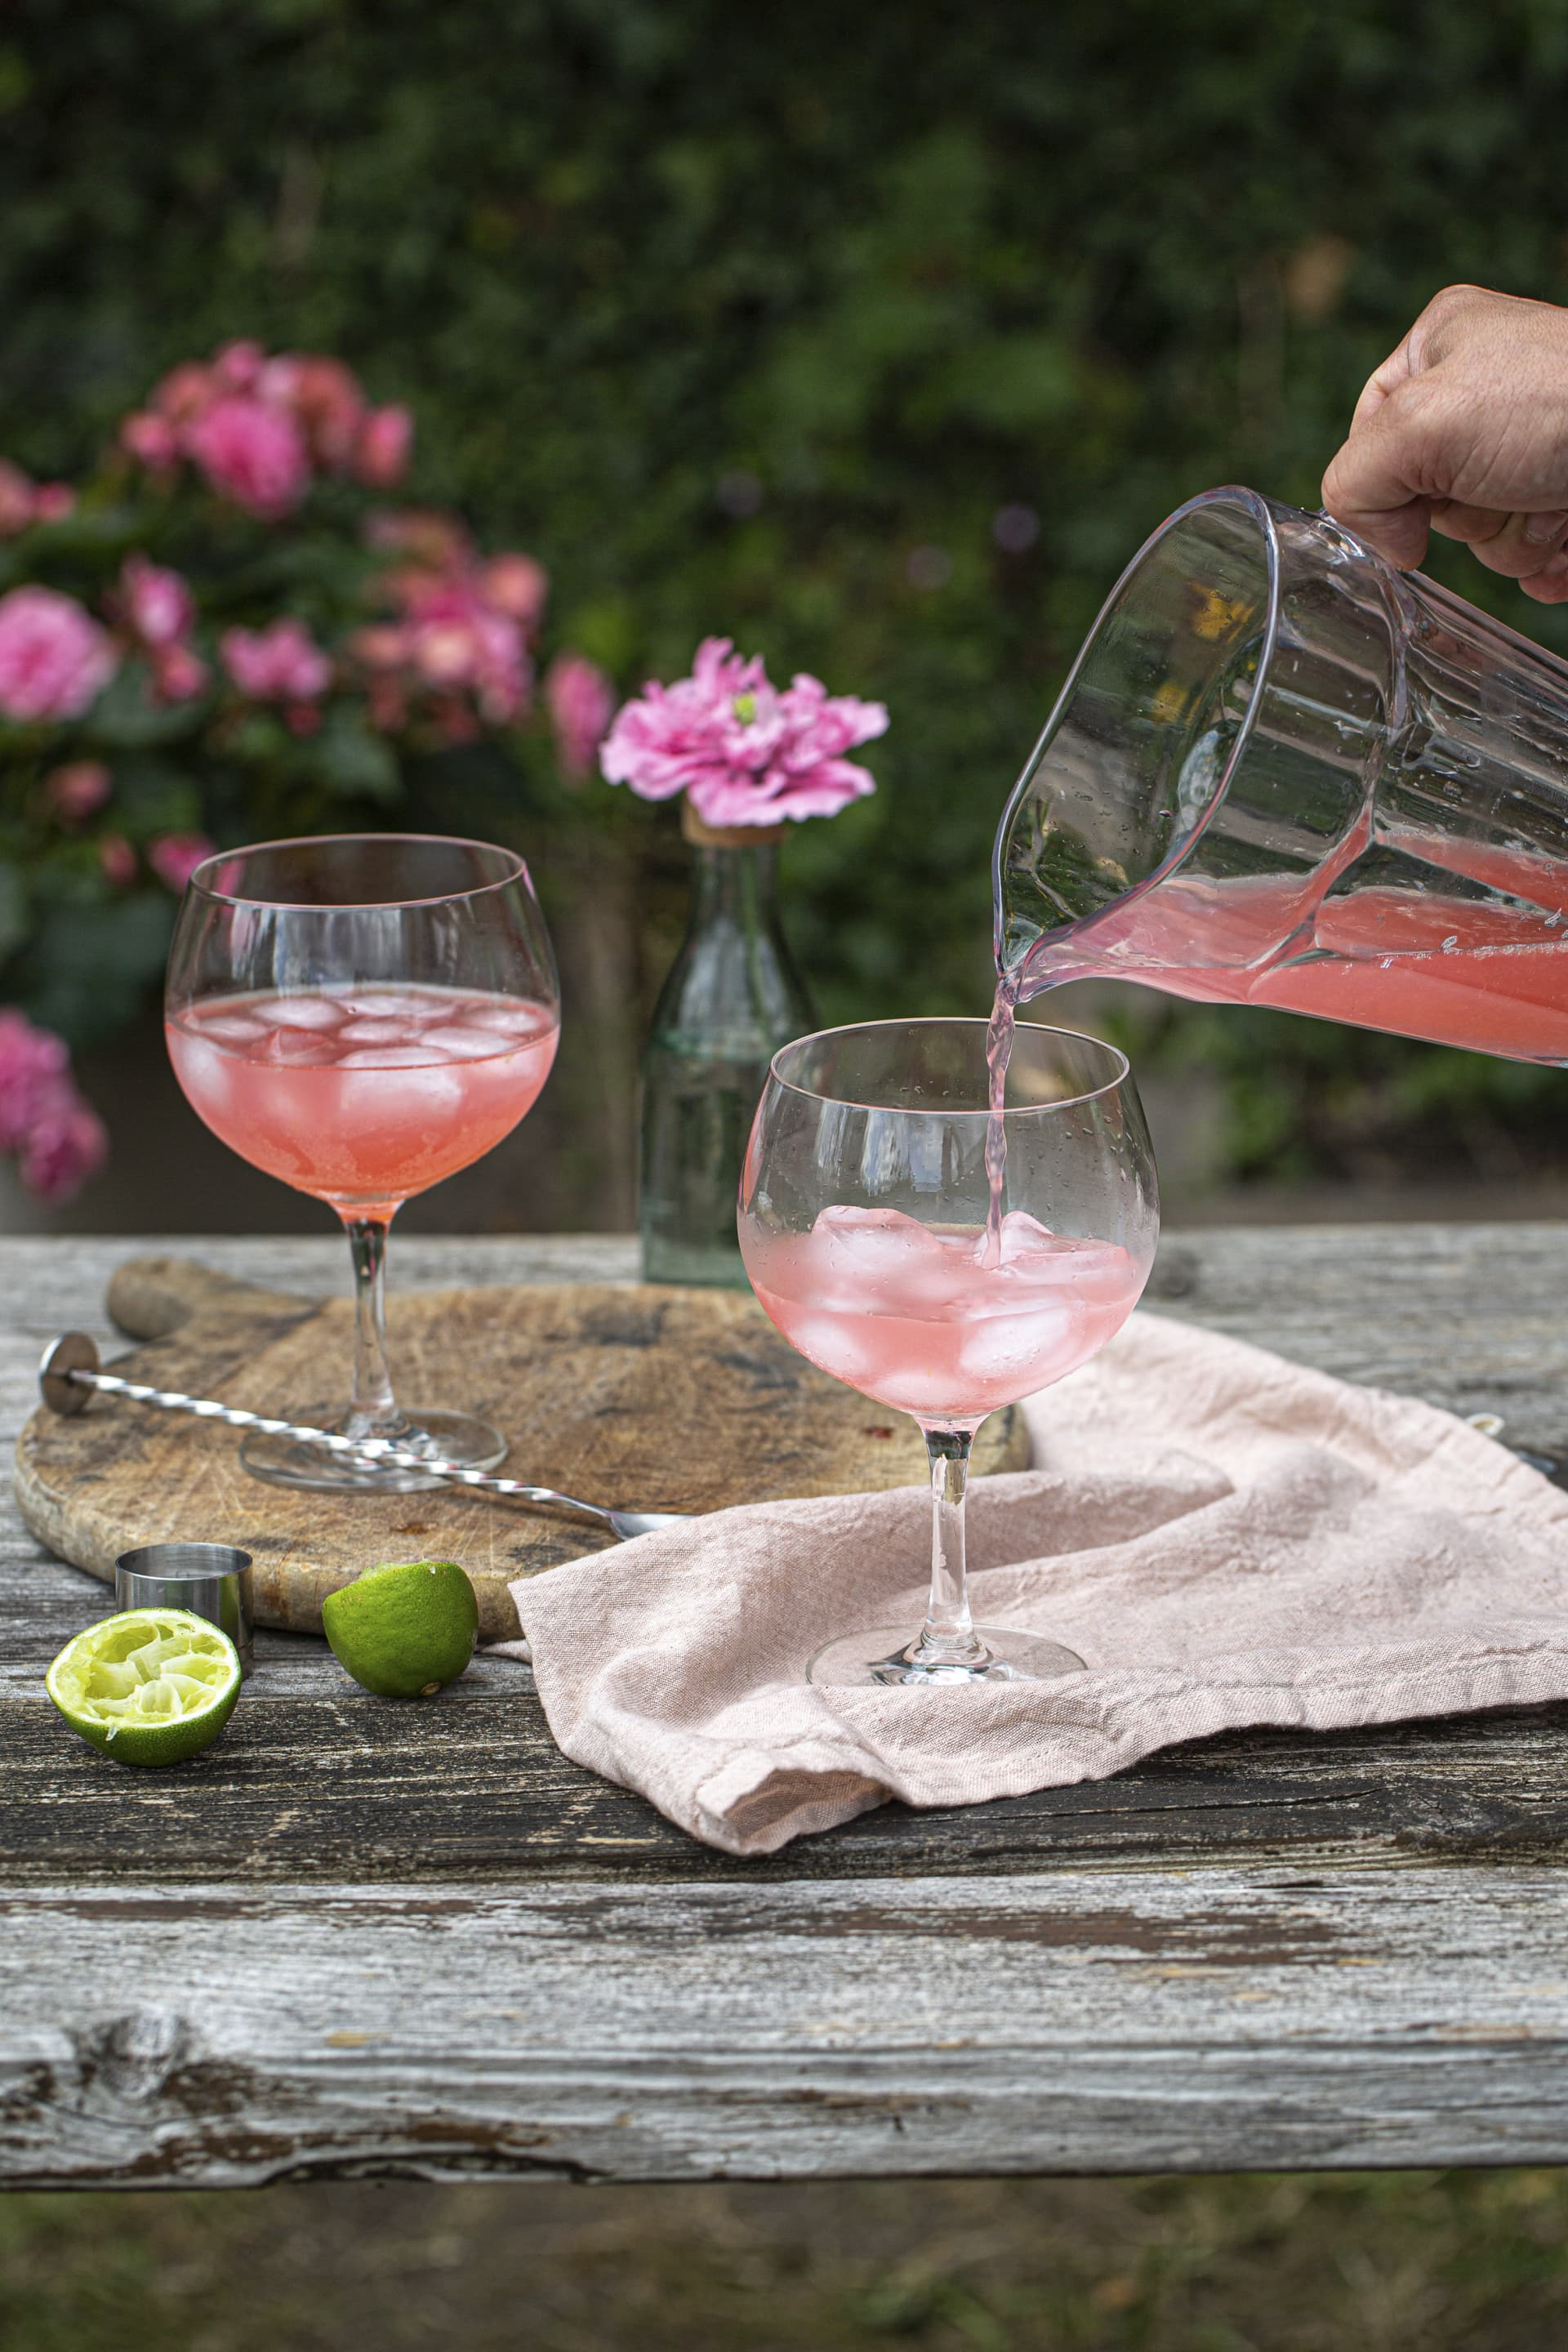 Just pour yourself the perfect garden cocktail, Sour Gin Rickey!